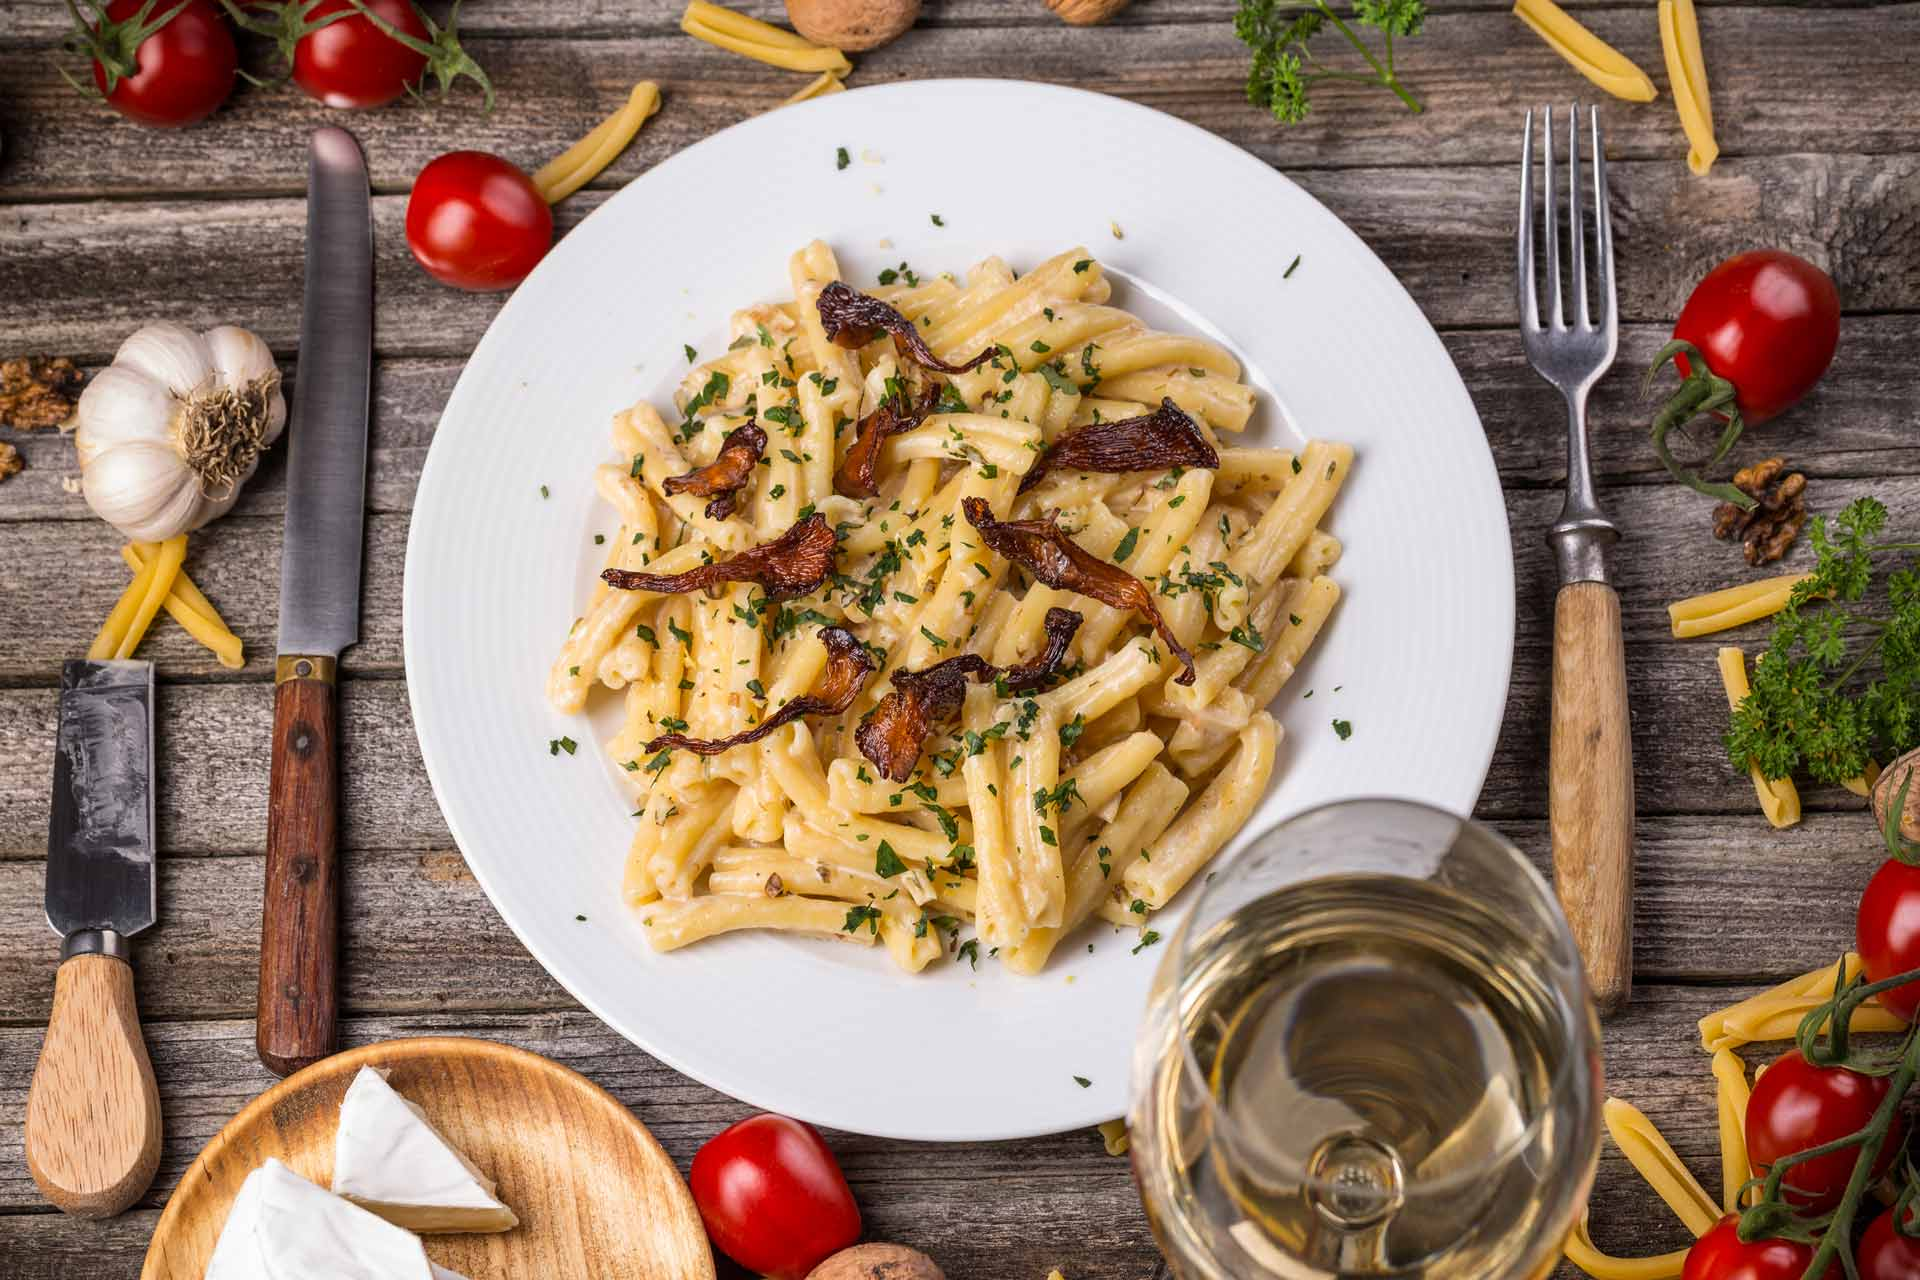 What Are The Health Benefits of Pasta?